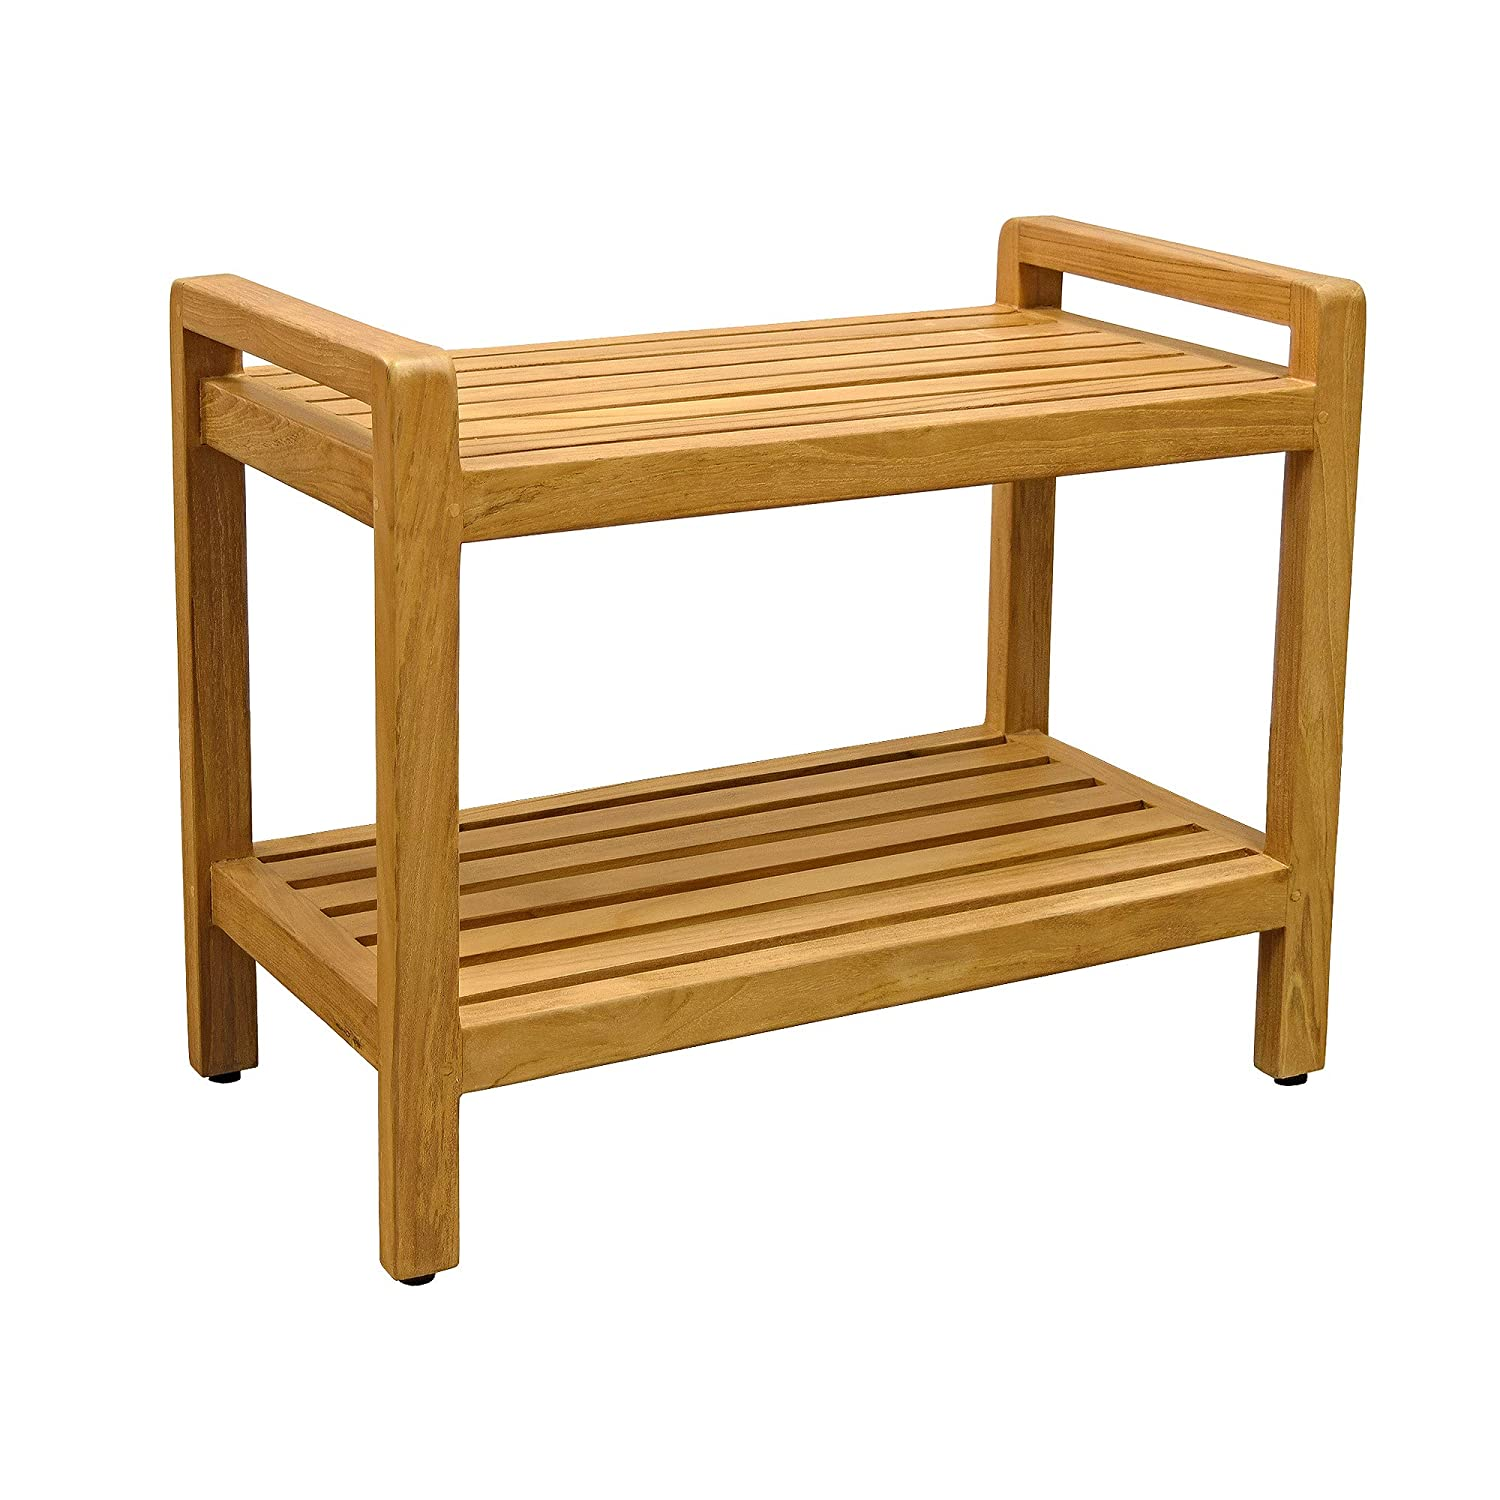 Asta Spa Teak Shower/Bath Bench mit Arms und Bottom Shelf, Amati